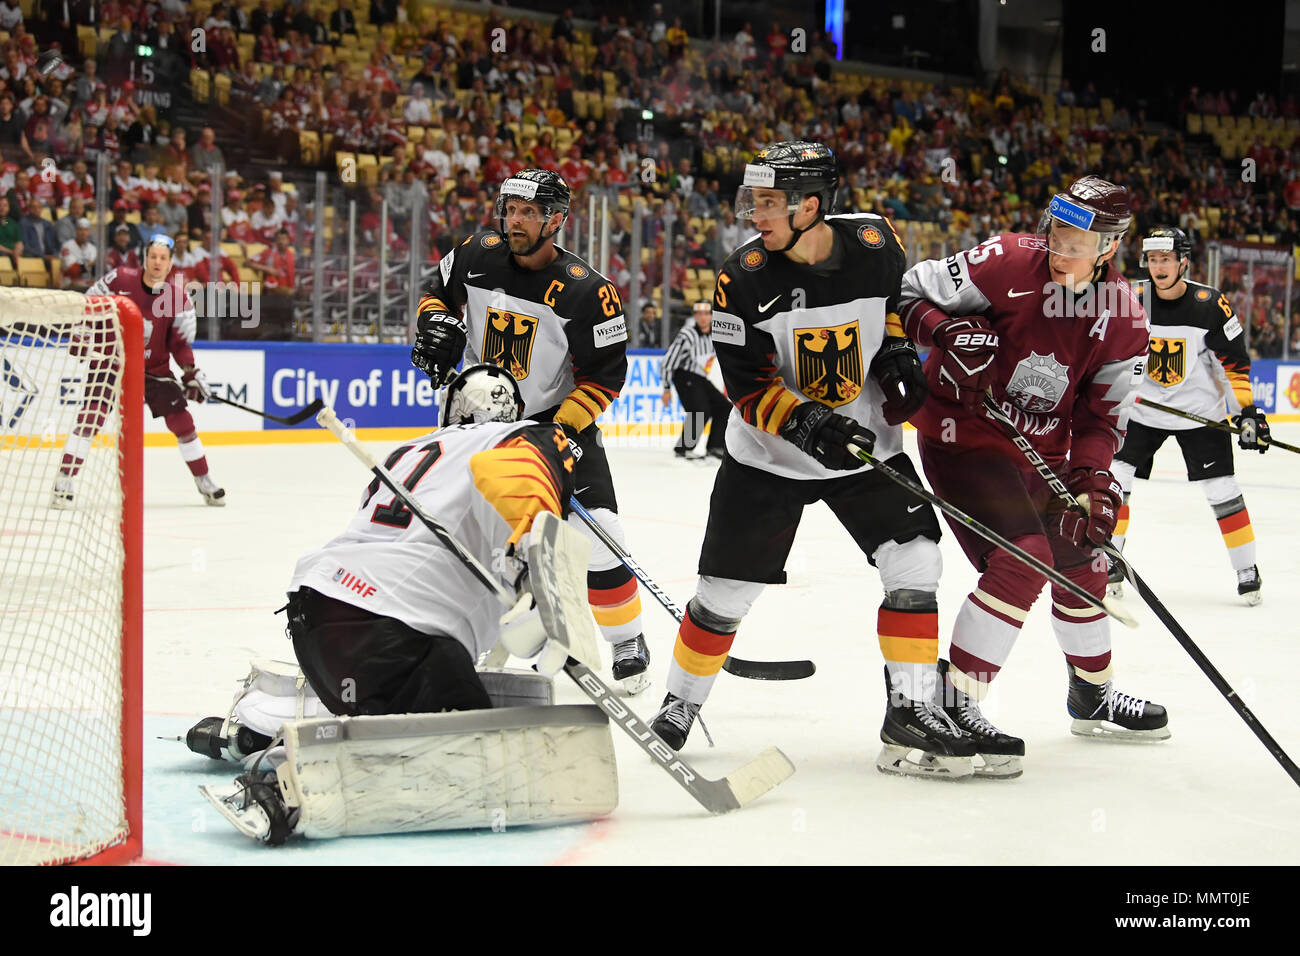 Herning, Denmark.. 12th May, 2018. (LR) Dennis Seidenberg, Niklas Treutle, Frederik Tiffels of Team Germany and Andris Dzerins of Team Latvia during the match between Latvia and Germany on 12.05.2018 in Herning, Denmark. (Photo by Marco Leipold/City-Press GbR) | usage worldwide Credit: dpa picture alliance/Alamy Live News Stock Photo